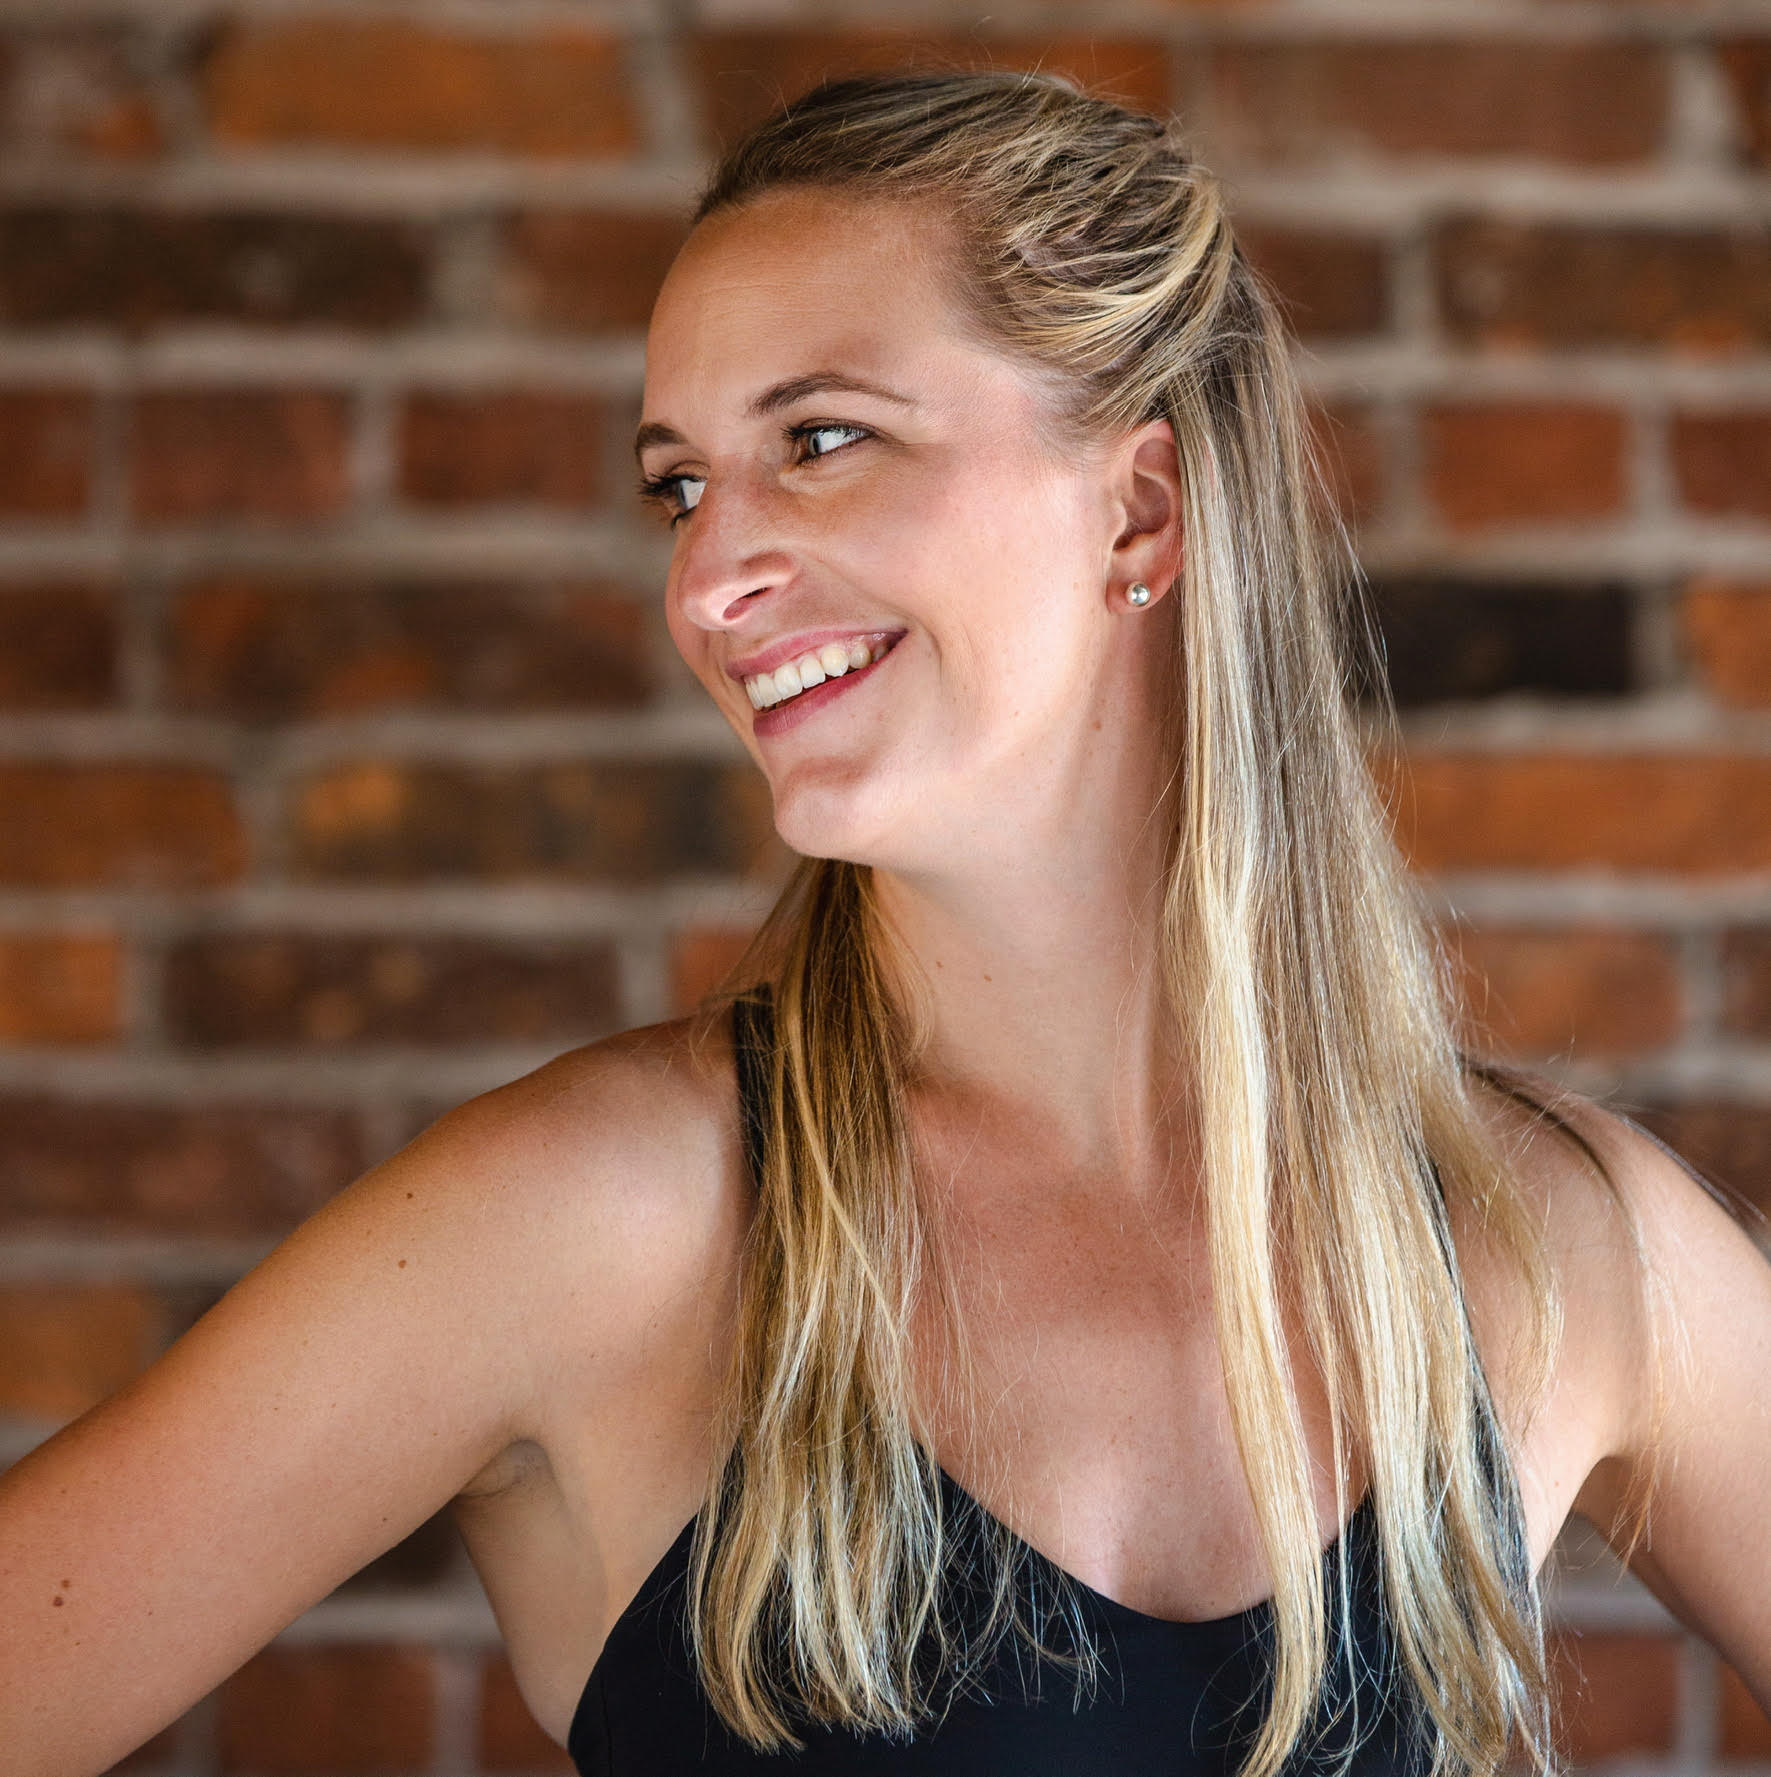 Image of Sarah owner of Fit Barre - International Women's Day